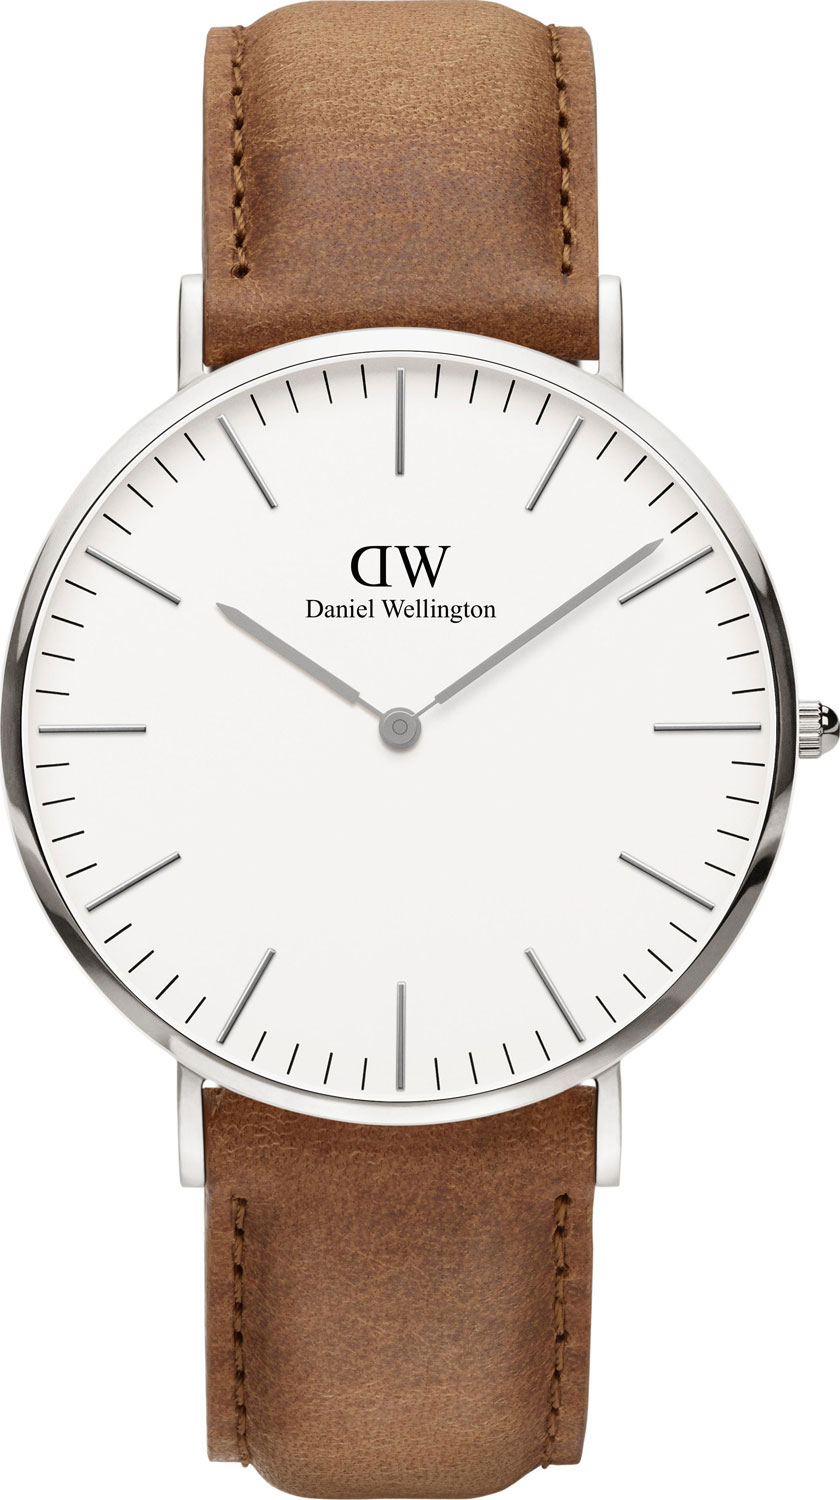 Мужские часы Daniel Wellington DW00100110 daniel wellington часы daniel wellington 0112dw коллекция exeter